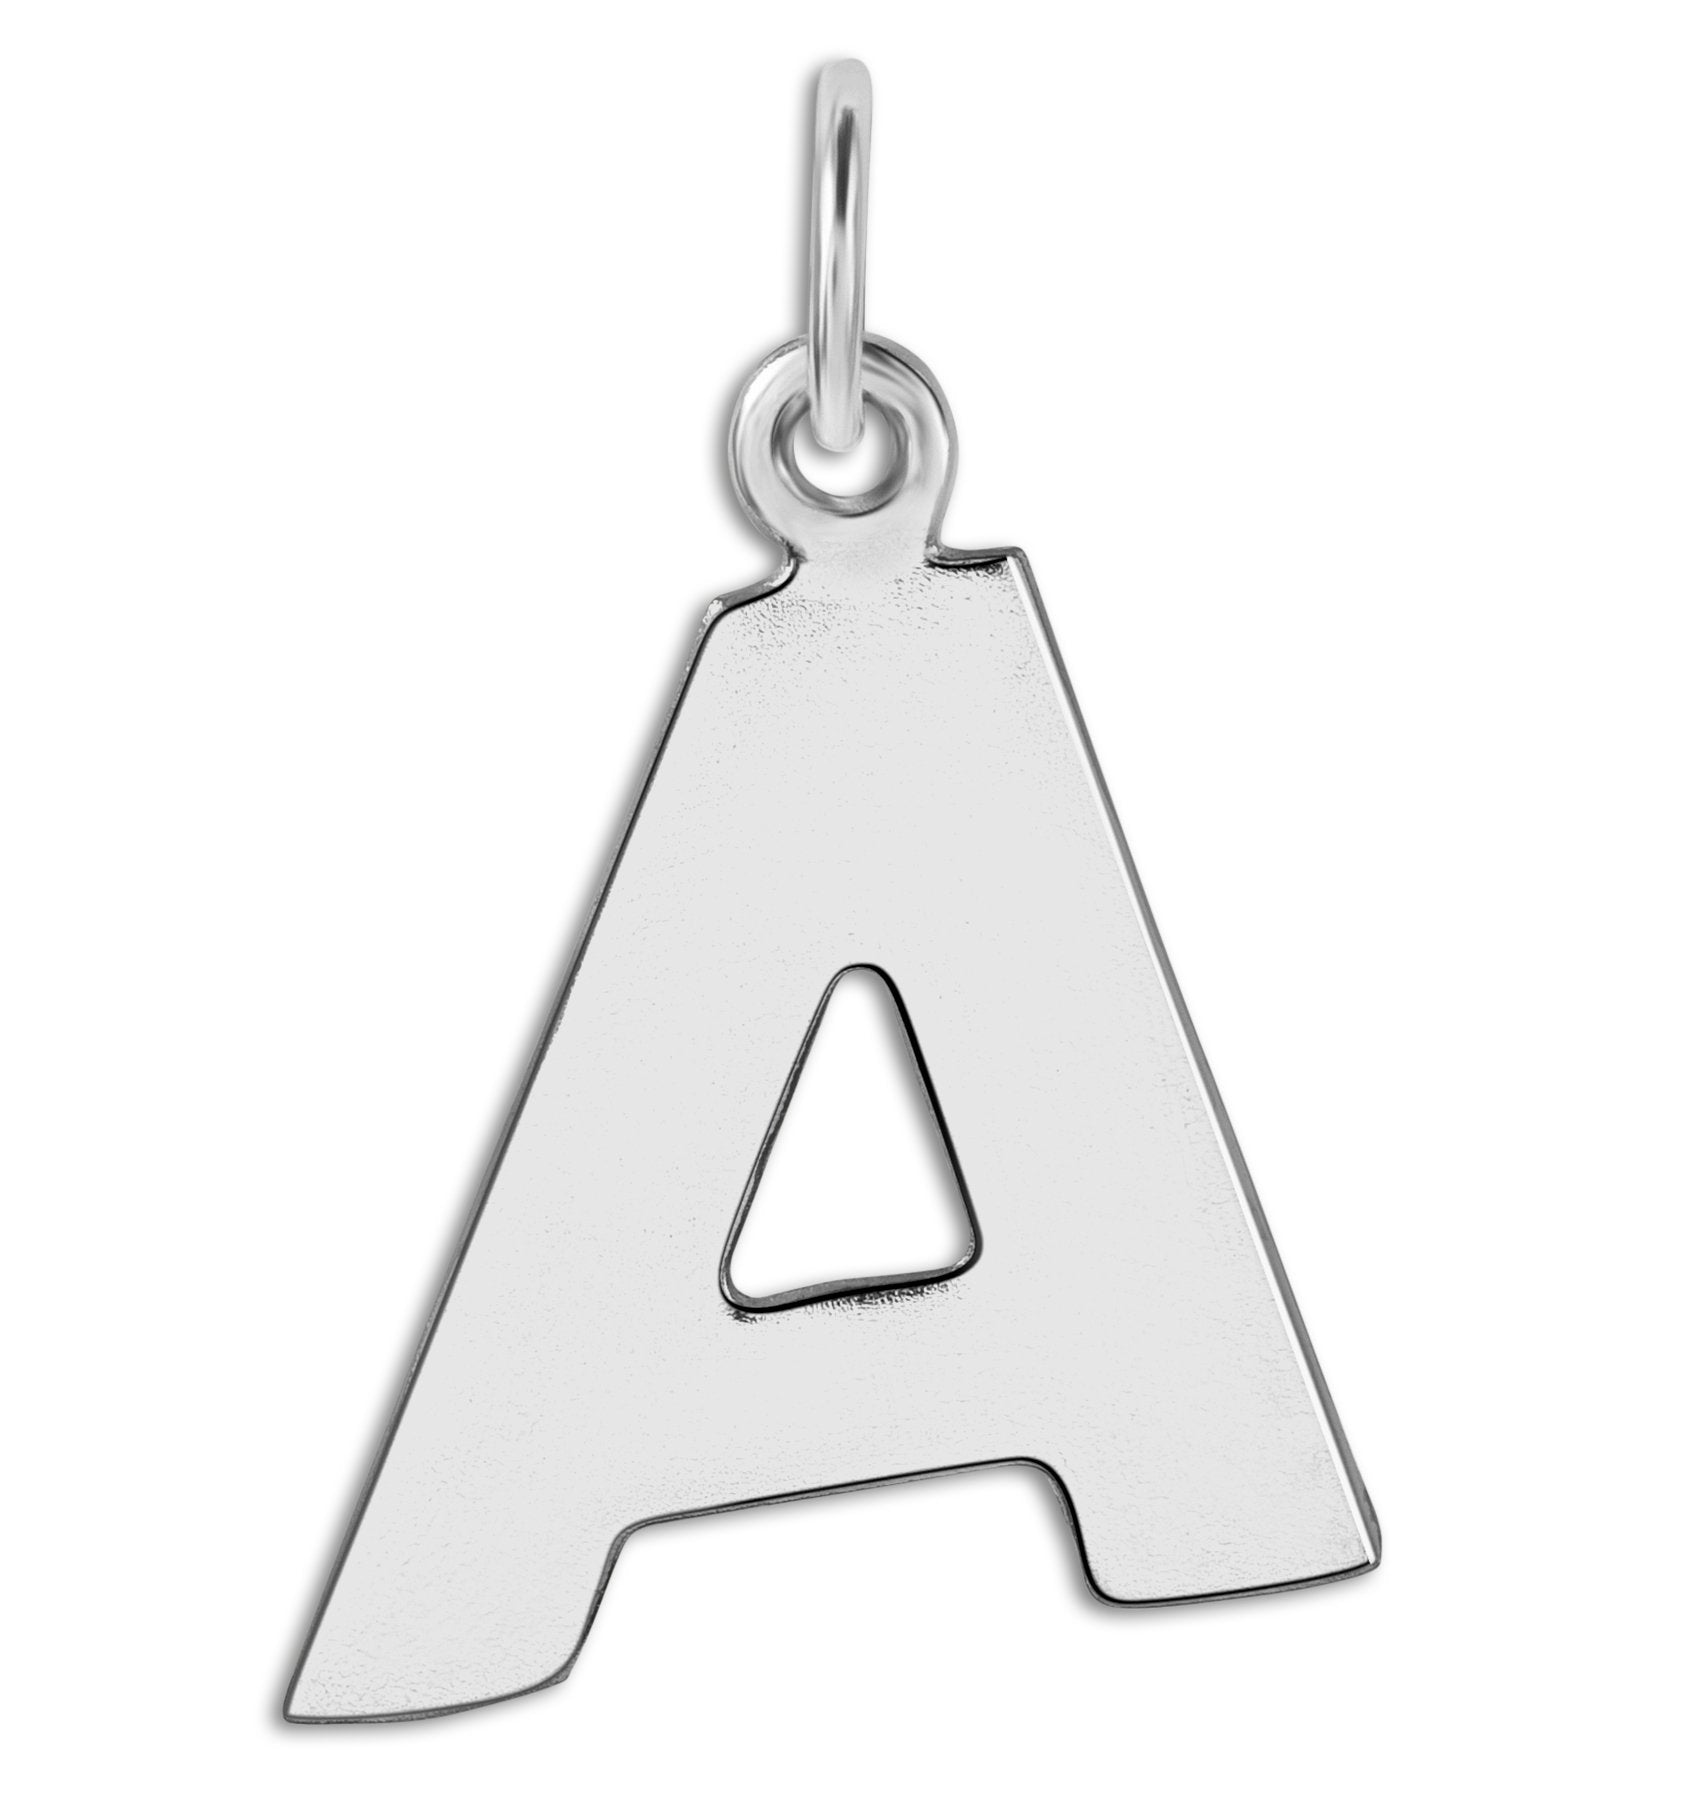 """A"" Cutout Letter Charm Sterling Silver Jewelry For Necklaces And Bracelets From Helen Ficalora Every Letter And Initial Available"